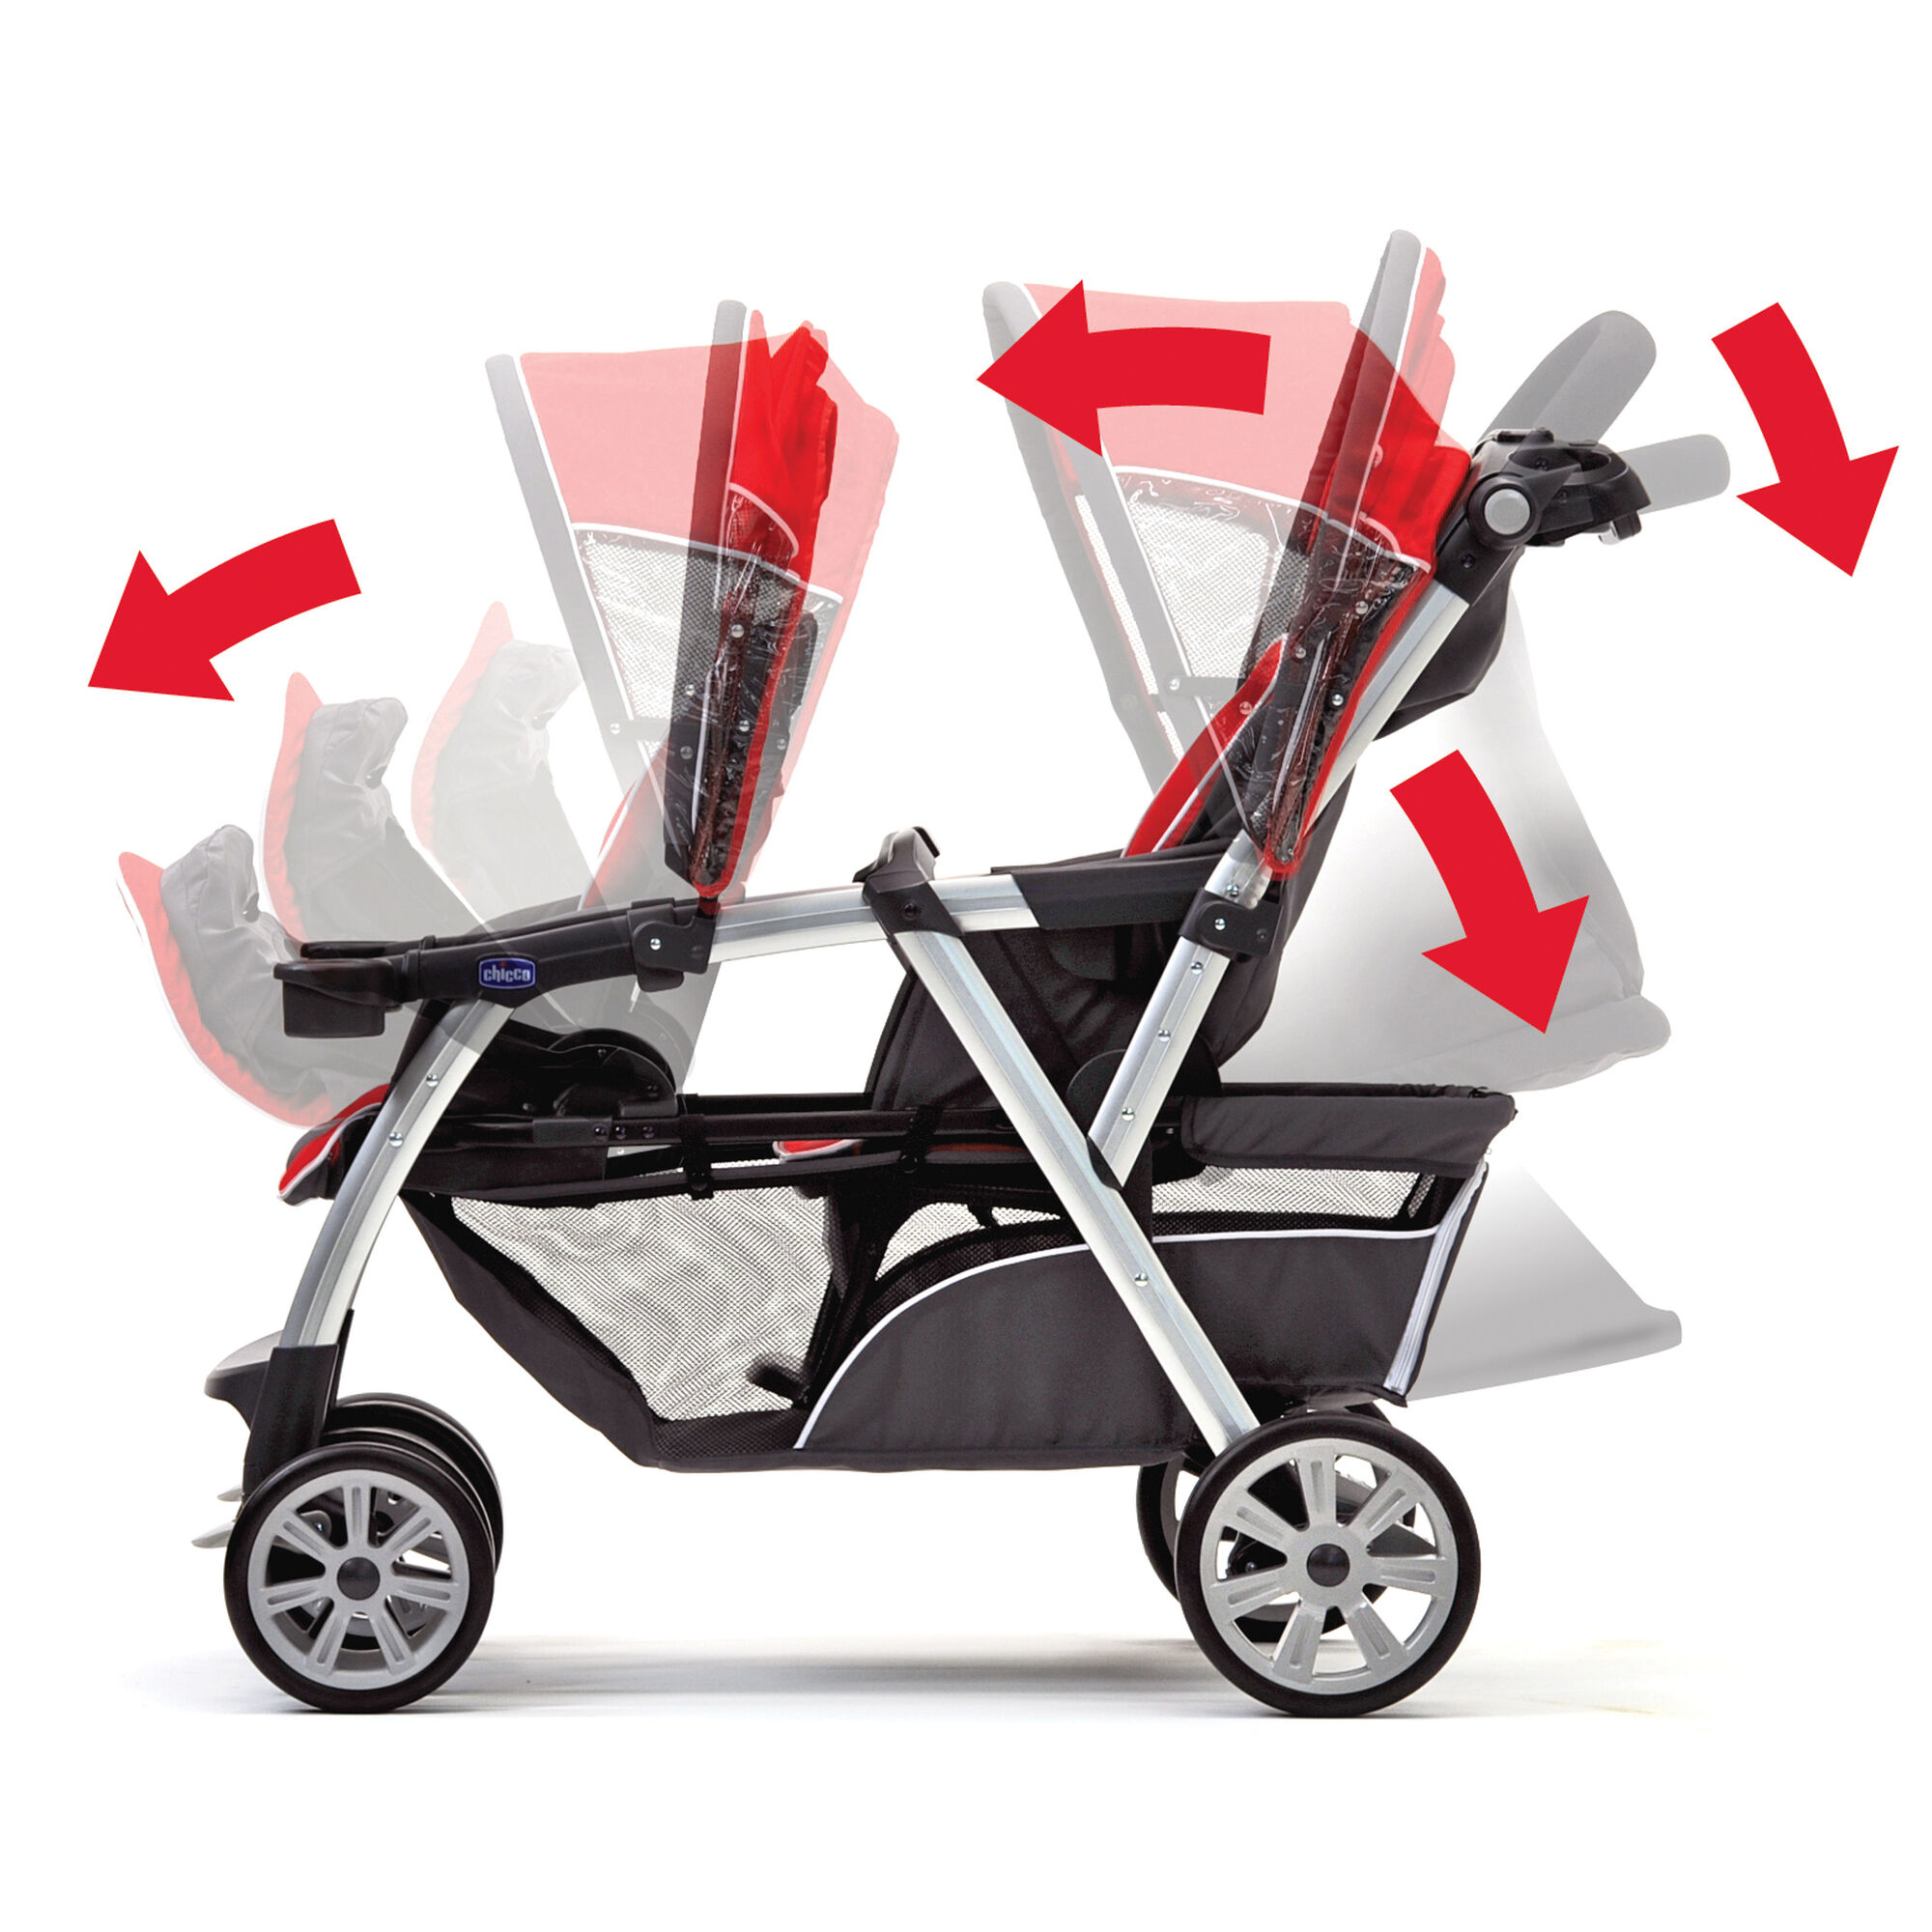 Chicco Double Stroller has independently adjustable removable canopies and the back seat fully reclines